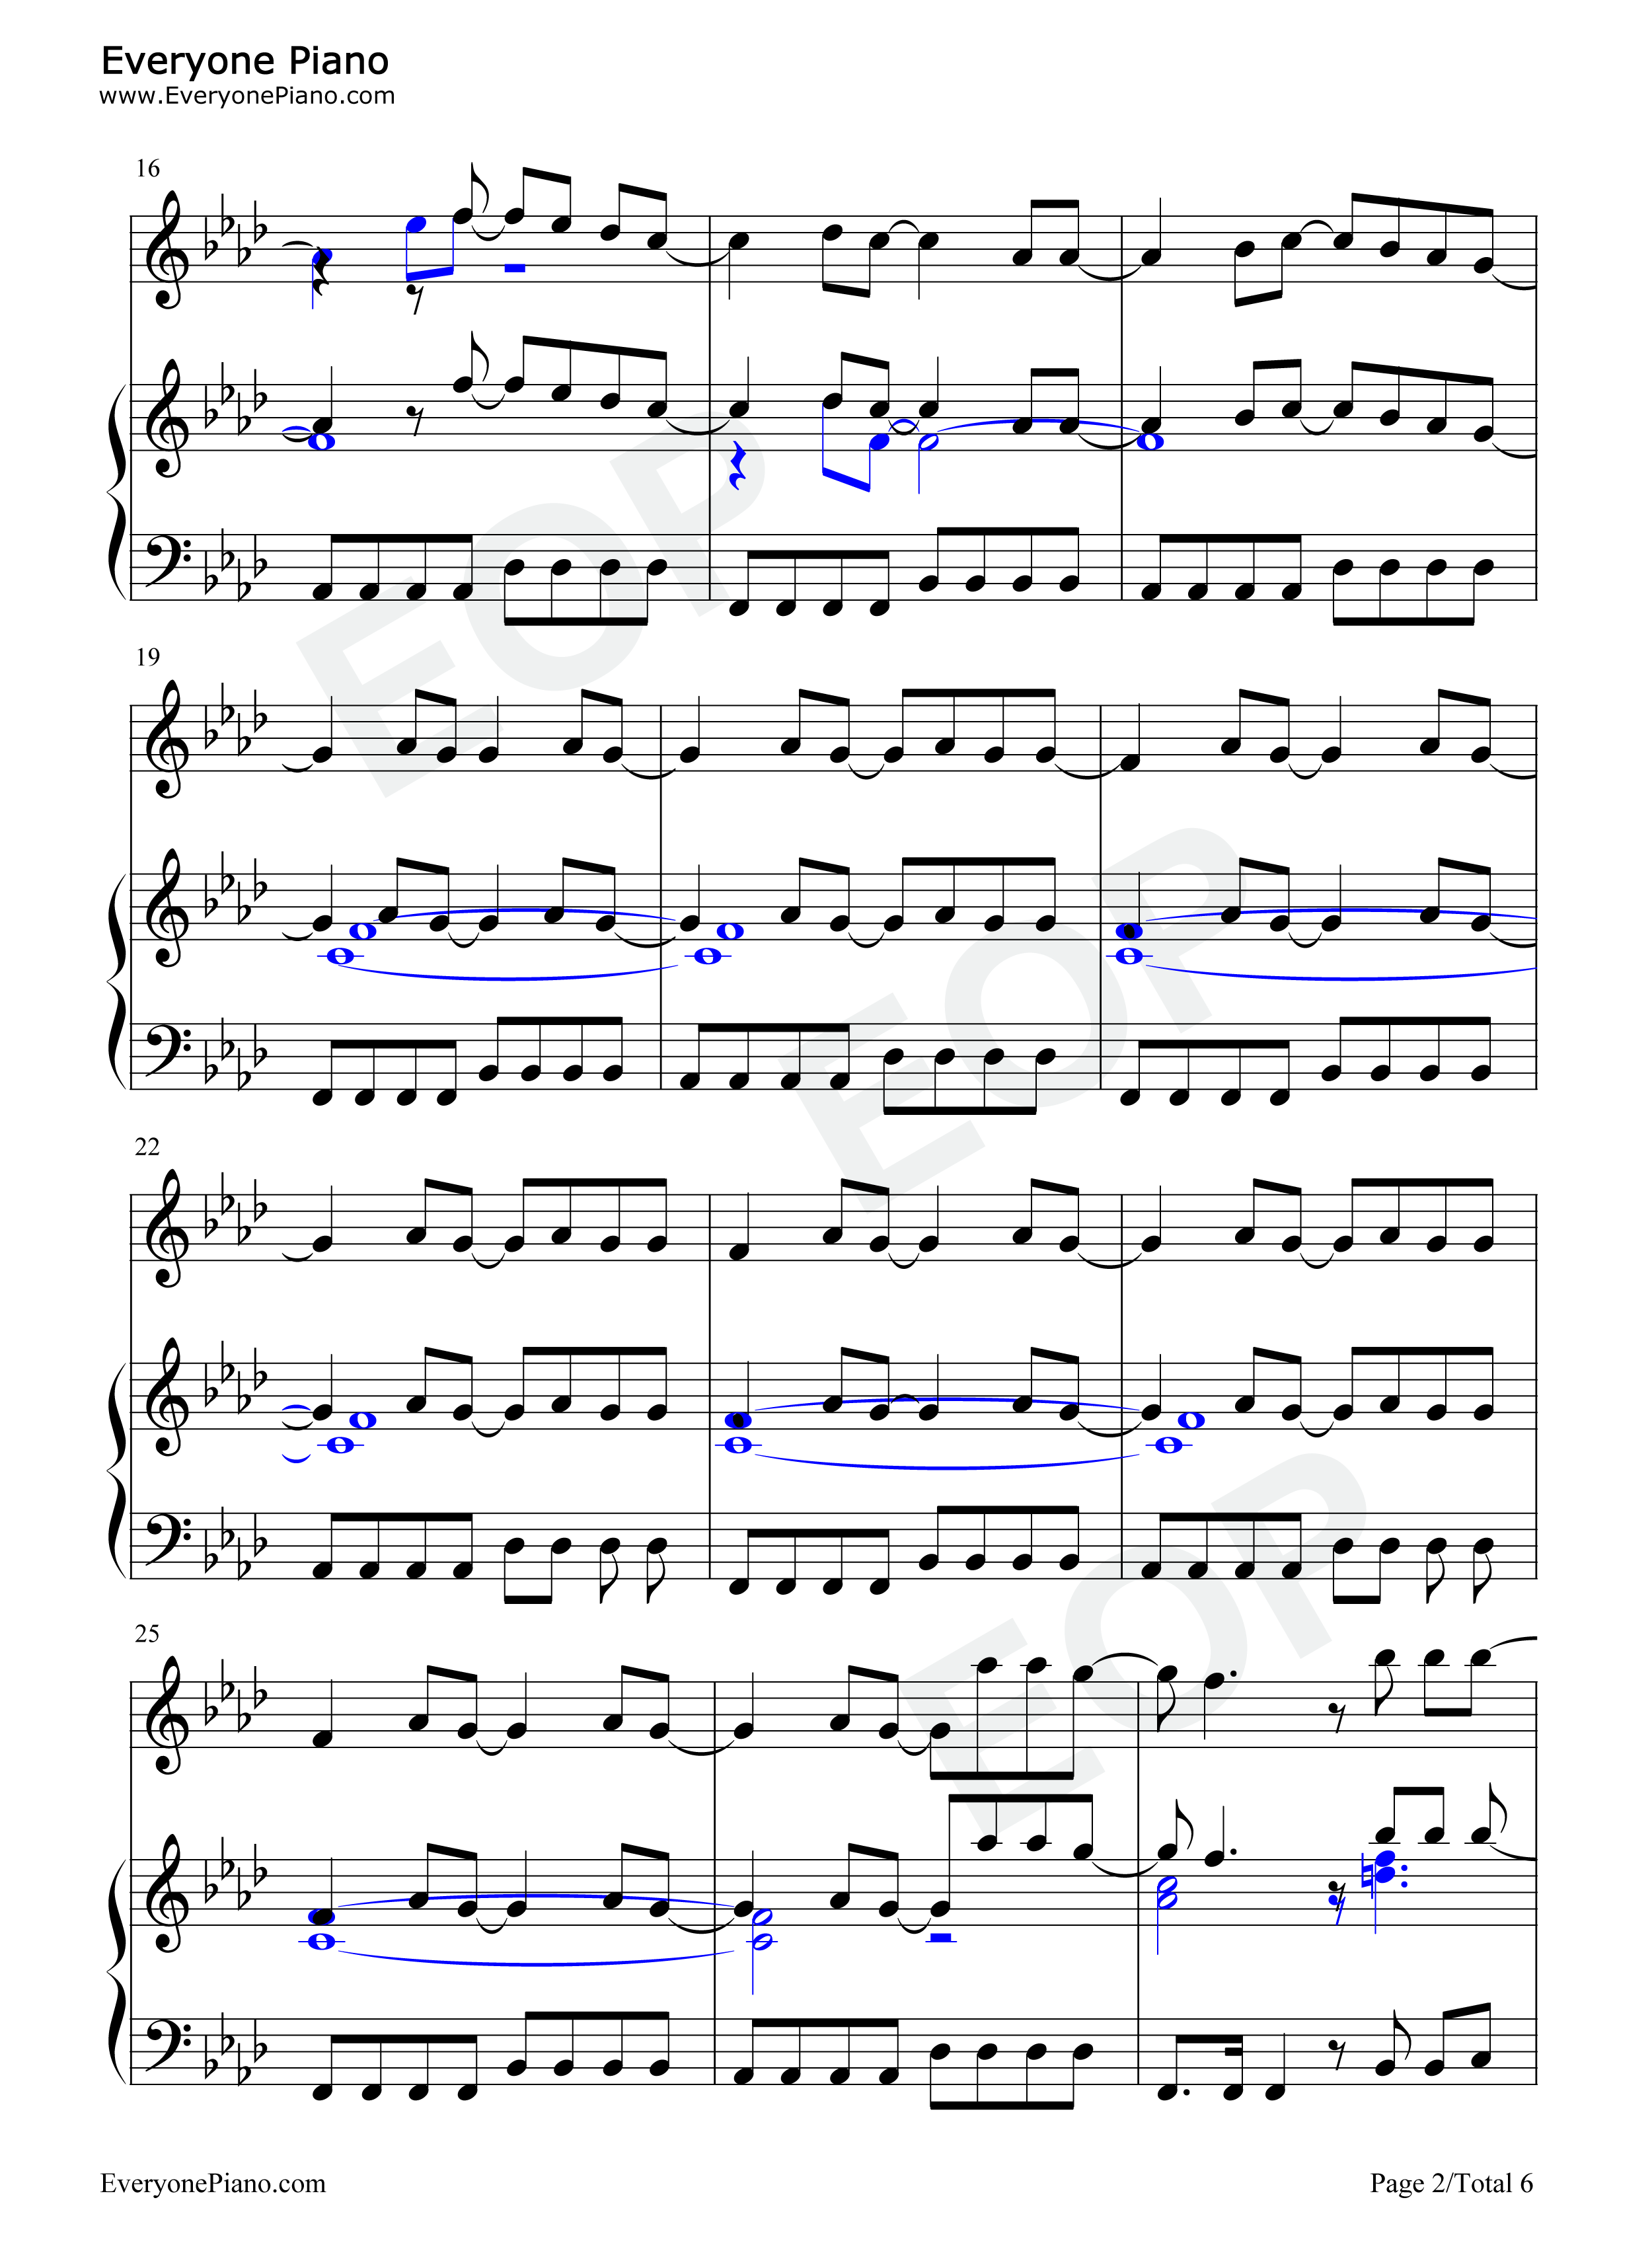 Smells Like Teen Spirit Drum Sheet Music - The Best Drum Of 2018